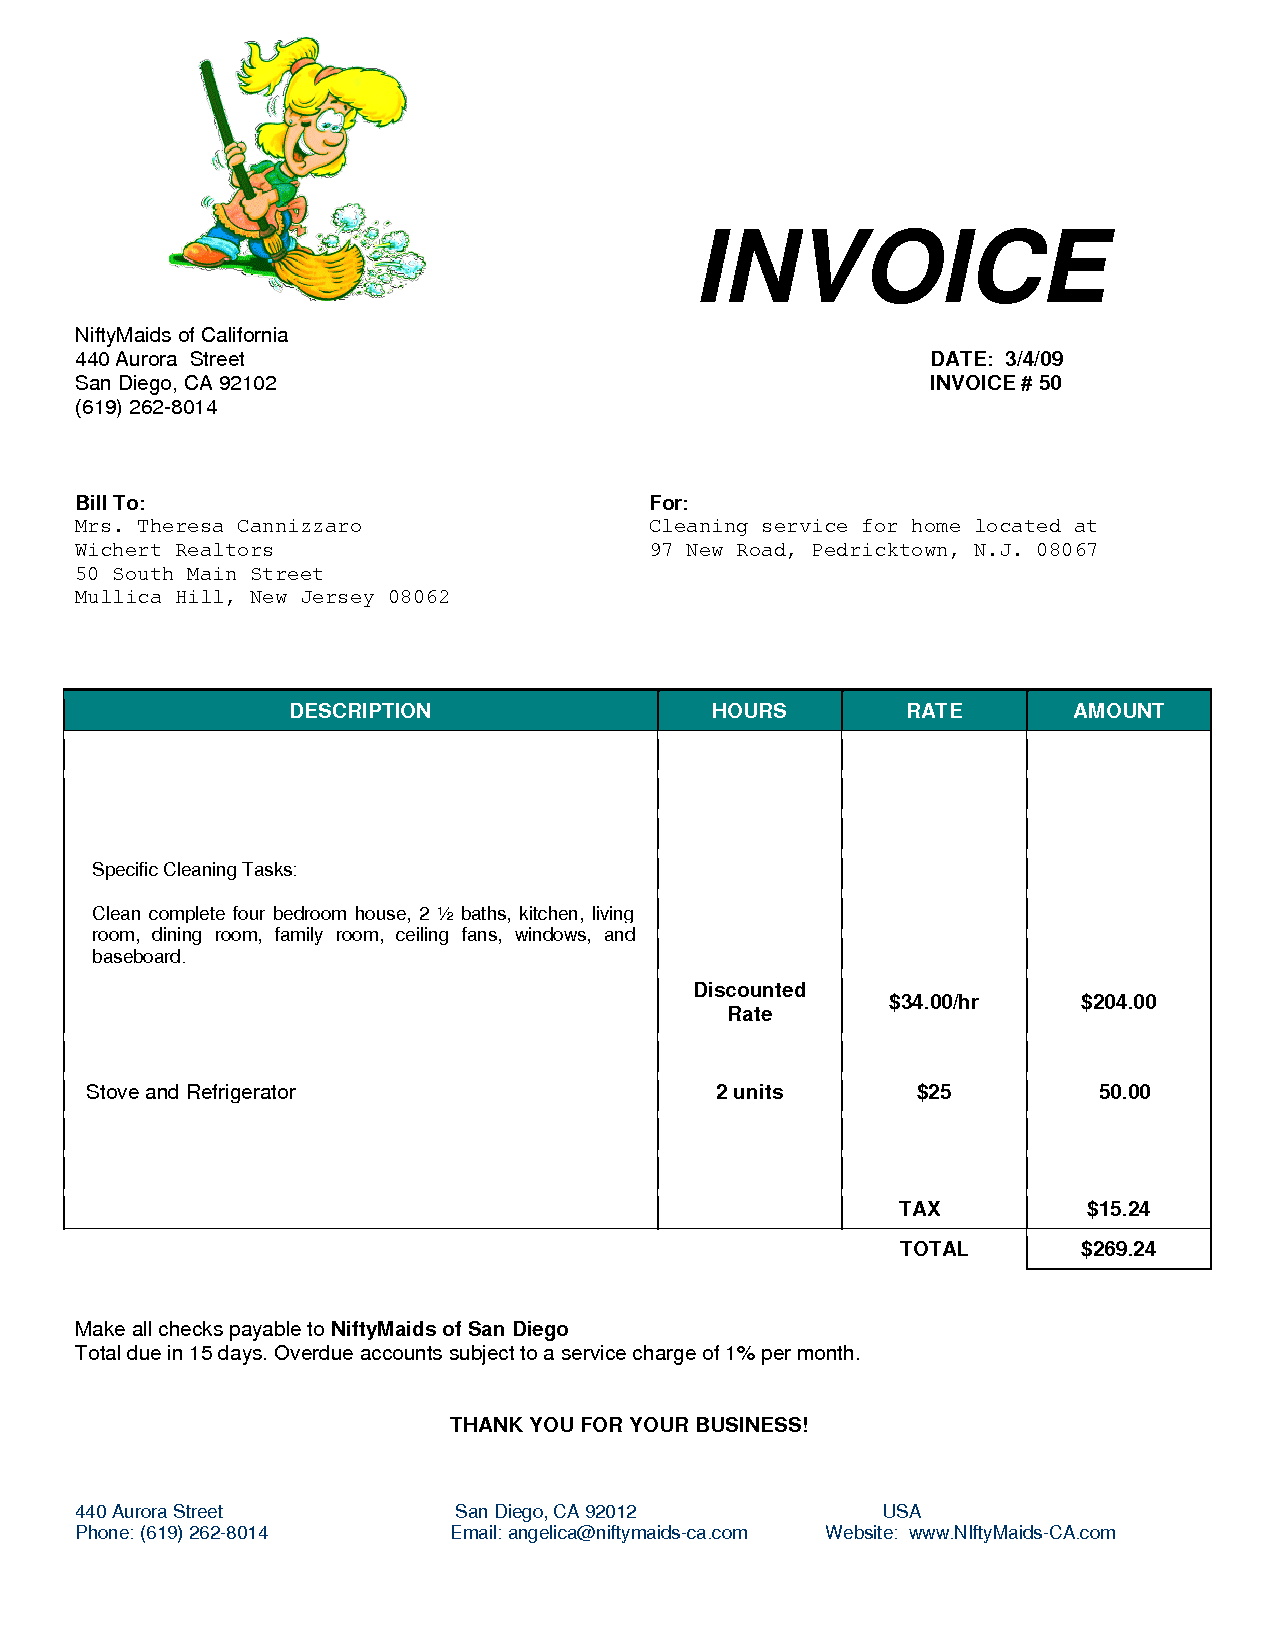 Cleaning Bill Invoice Services Invoice Ideas For The House - Free billing invoice templates for service business